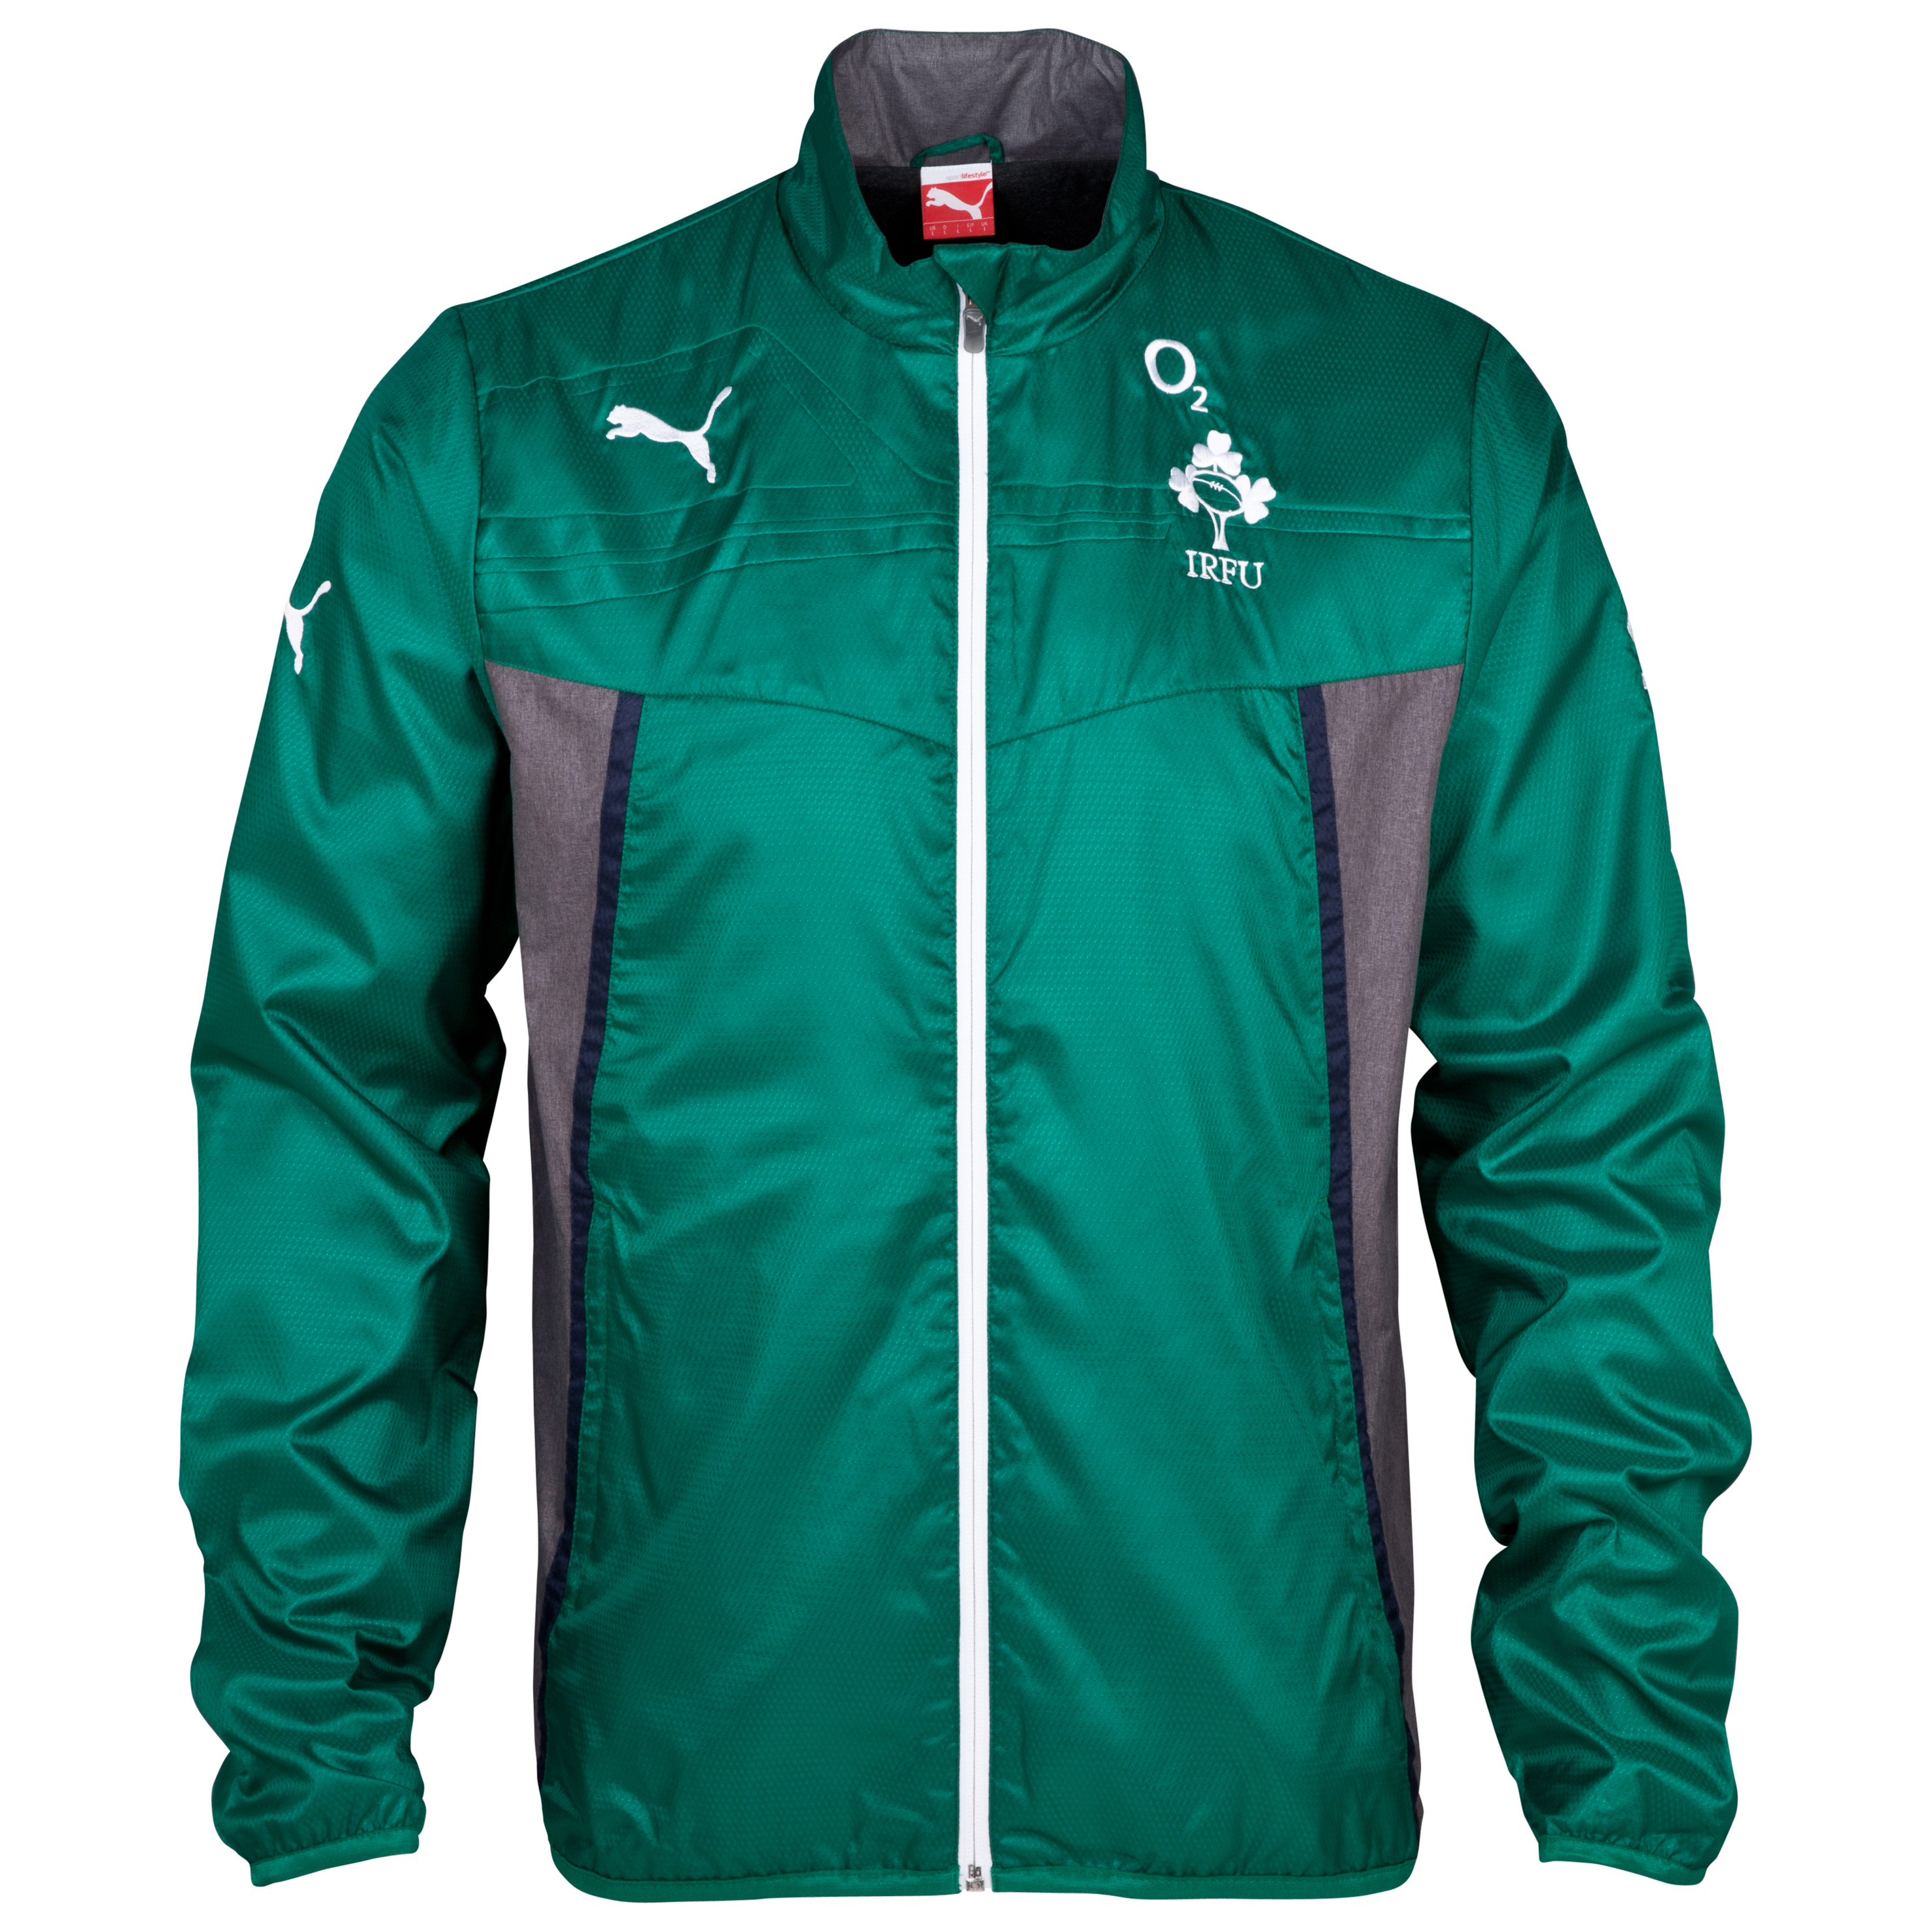 Ireland Presentation Jacket - Power Green/Dark Grey Heather Green